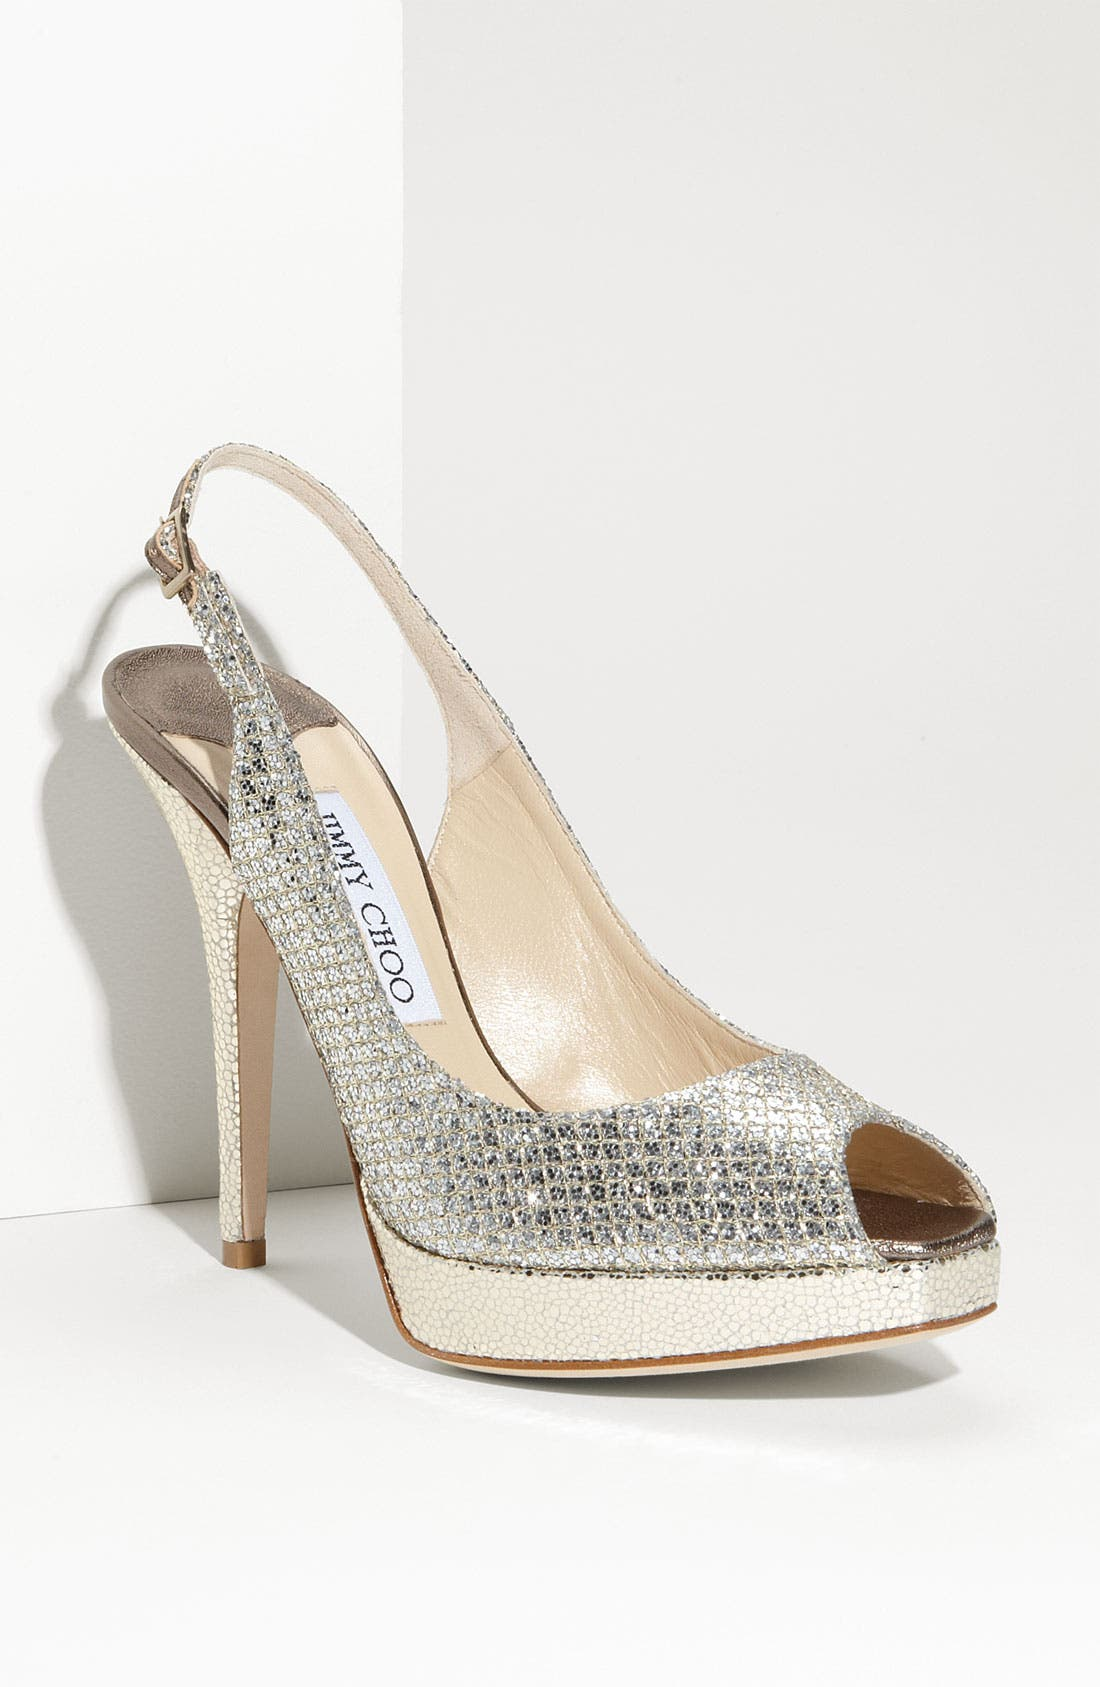 Main Image - Jimmy Choo 'Clue' Glitter Slingback Pump (Nordstrom Exclusive Color)